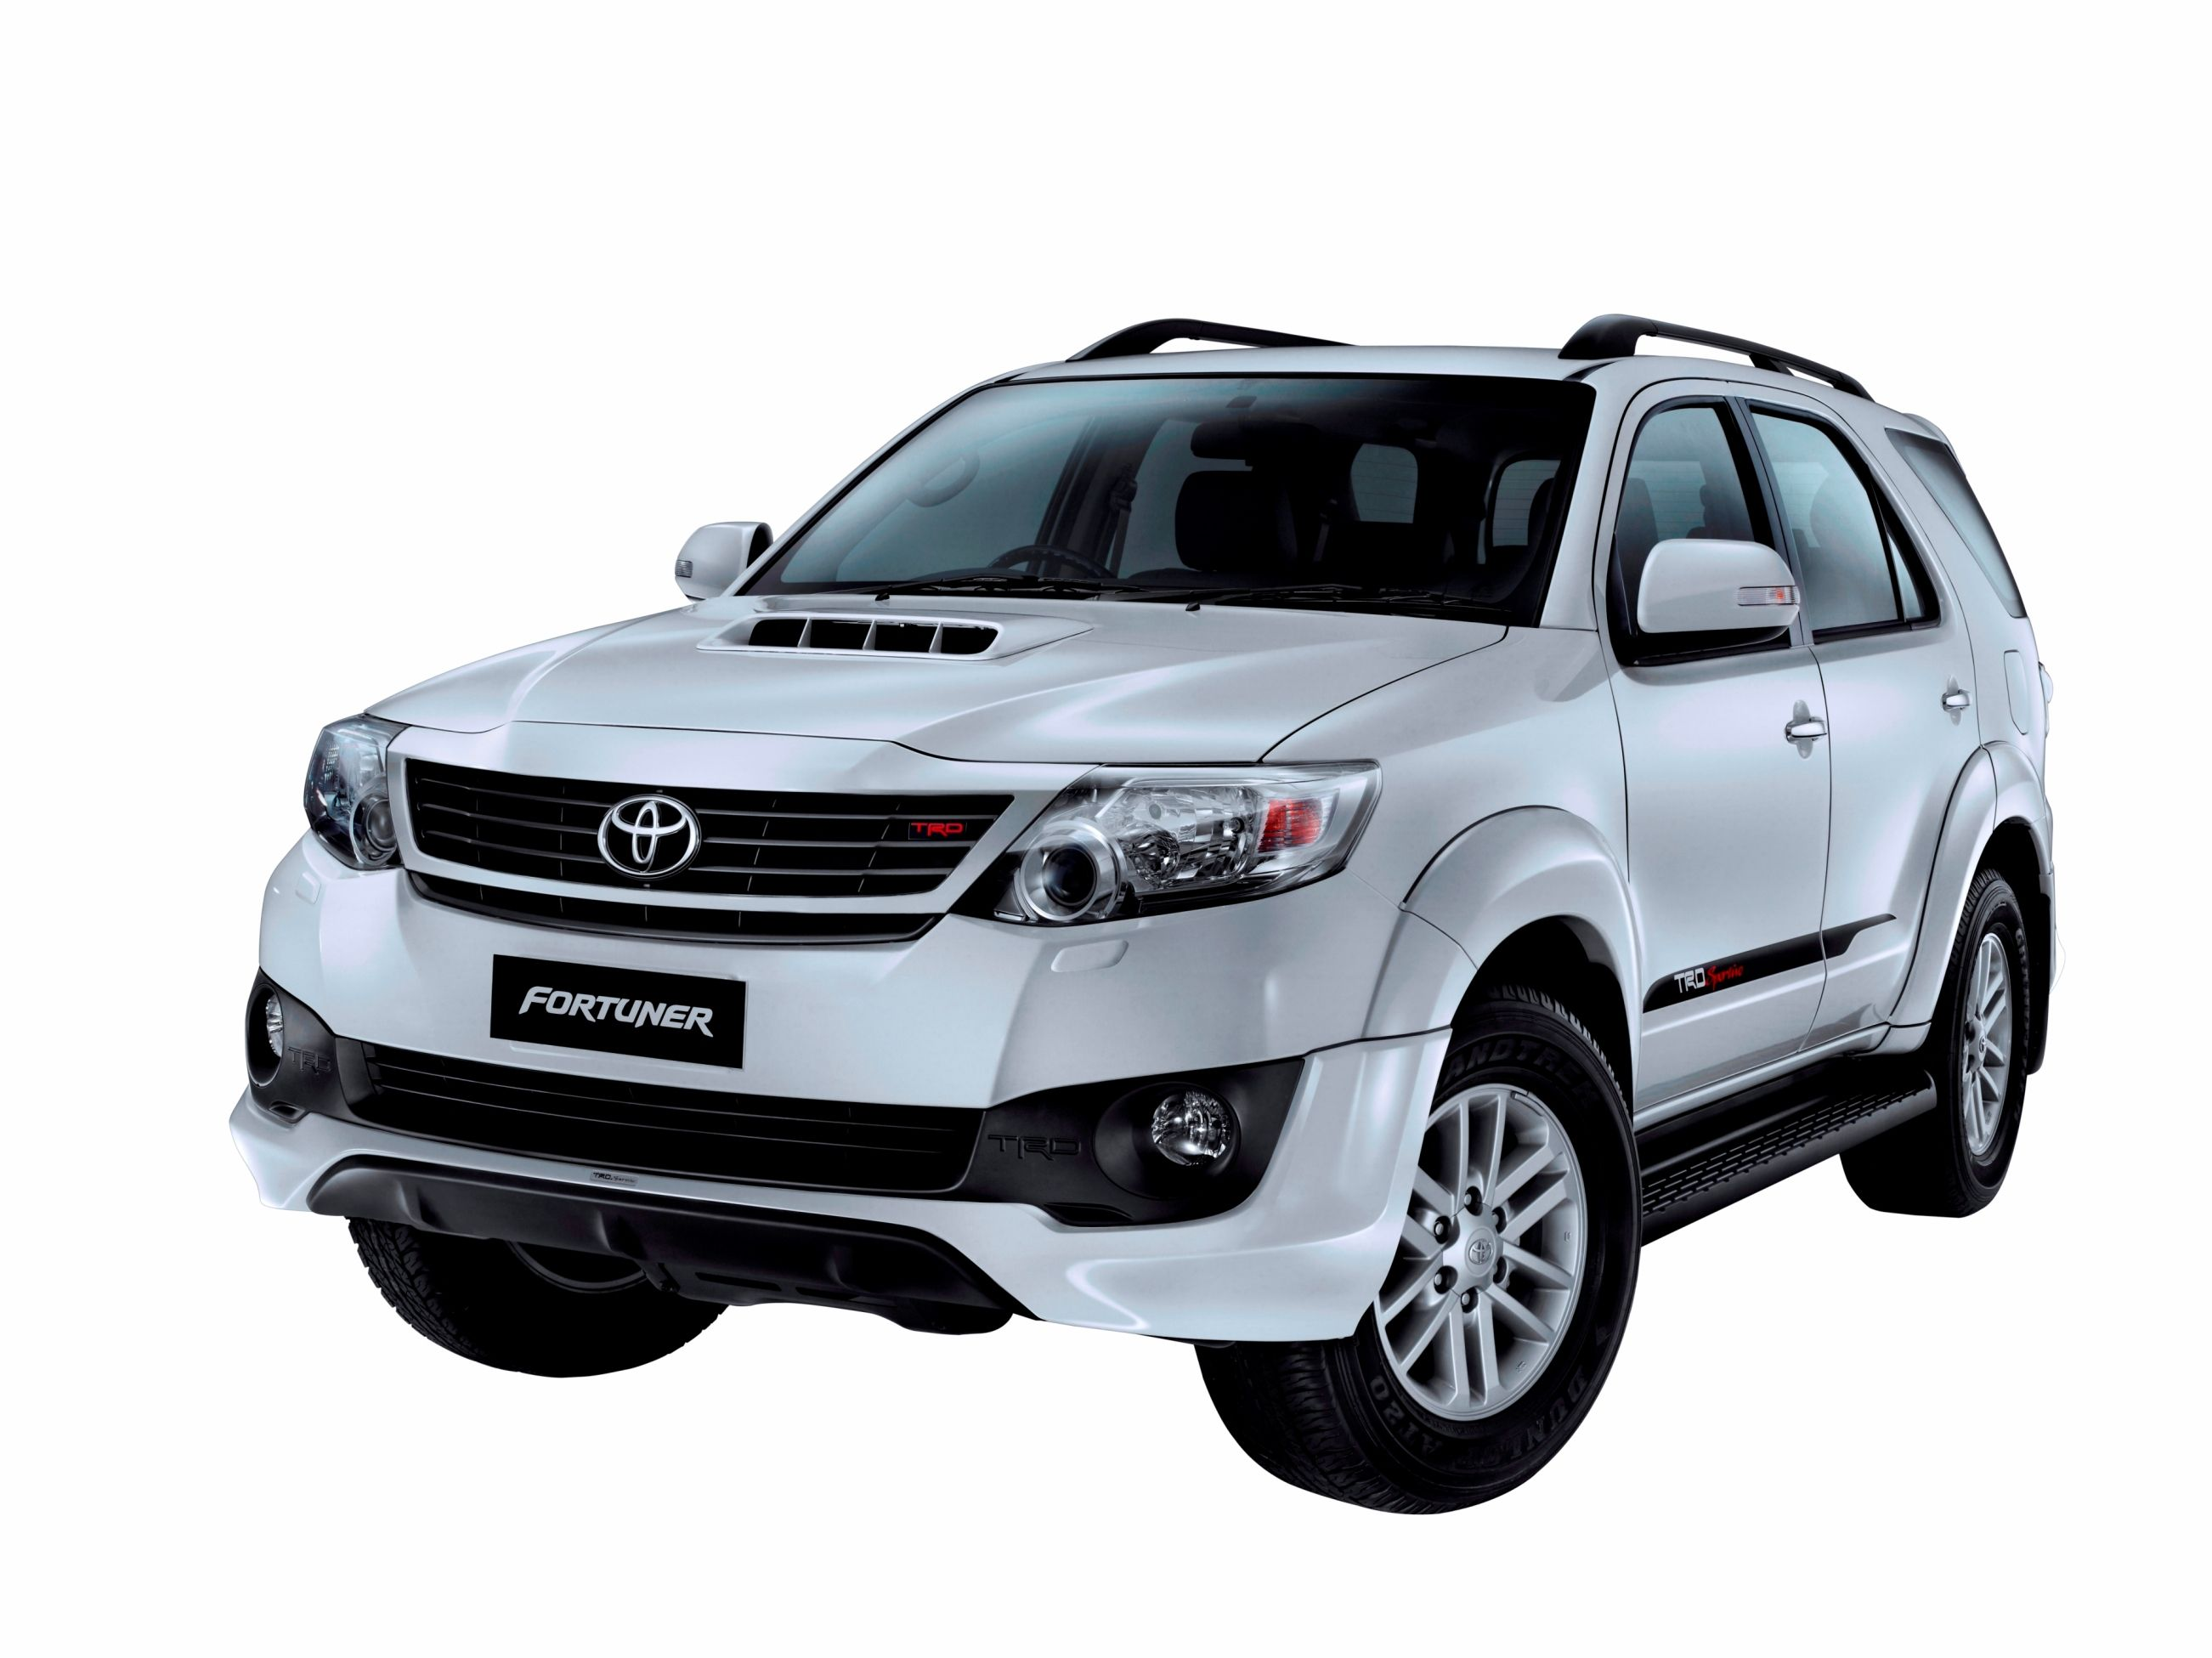 toyota has re launched the fortuner trd sportivo in india only 400 units of the suv will be sold available in 2wd mt and 2wd at variants htt